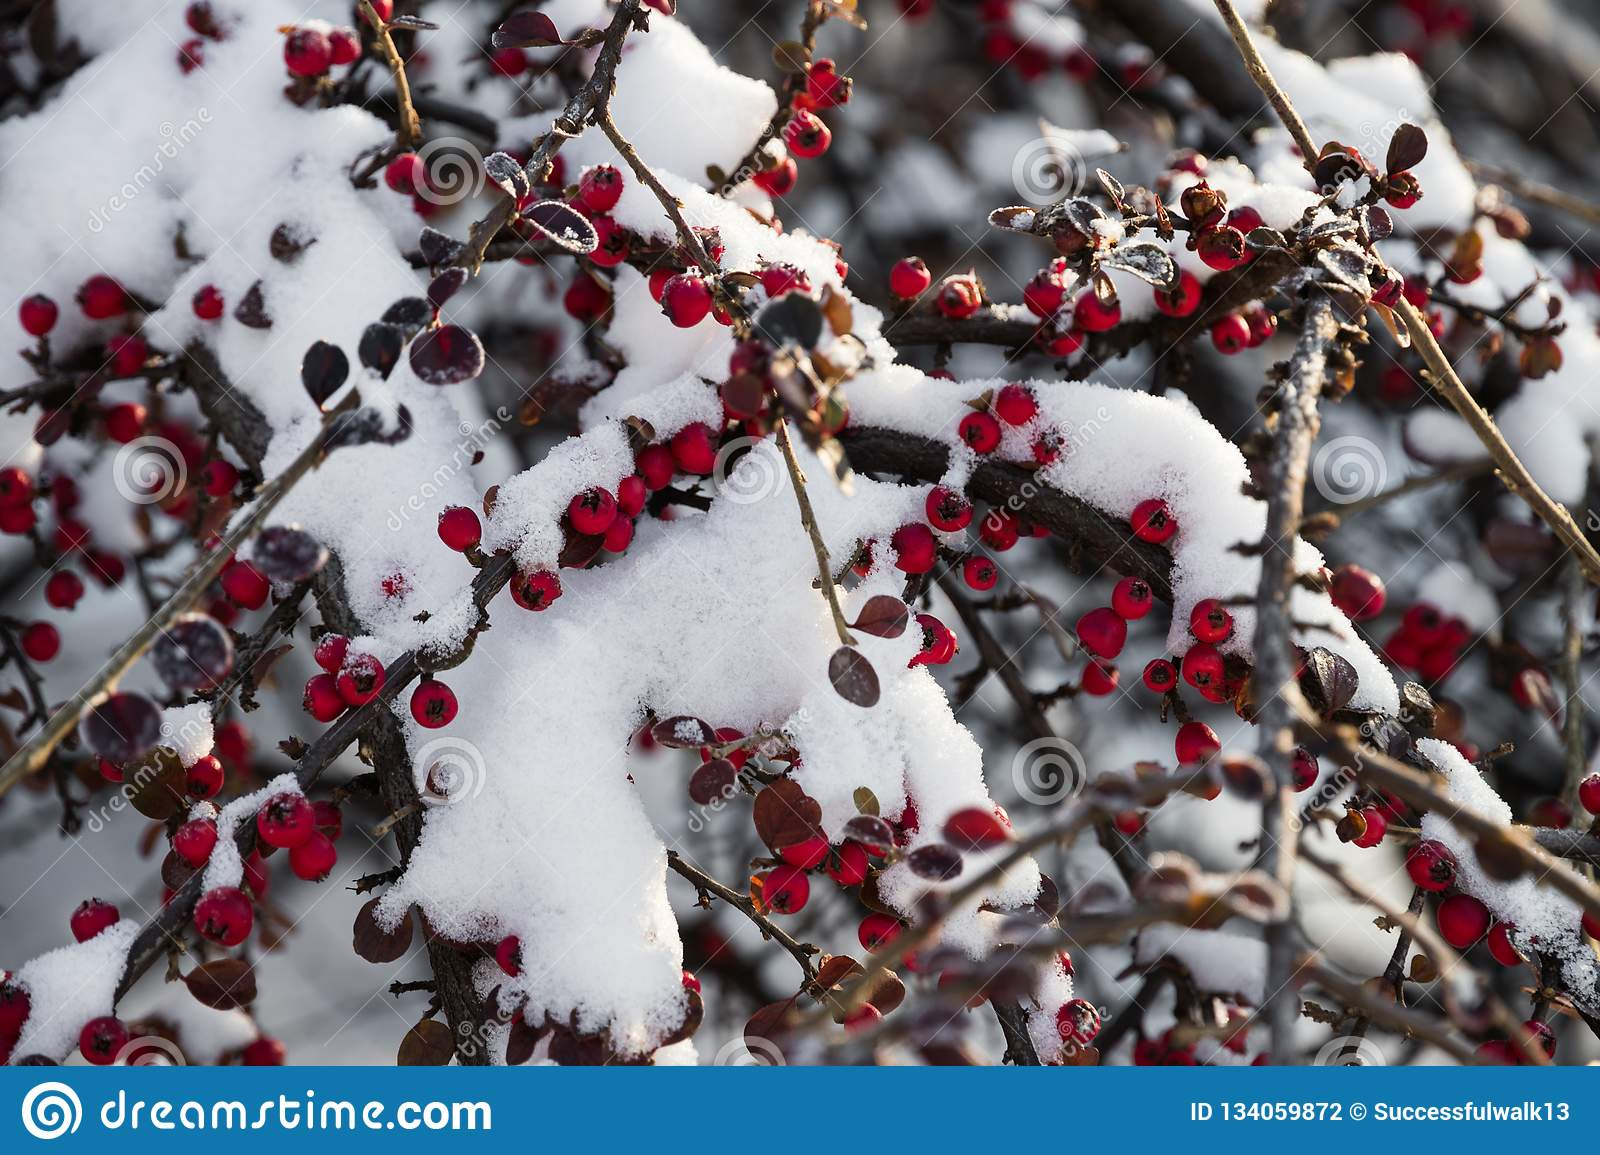 Bright Red Berries In The Snow In A Winter Sunny Day Stock Photo